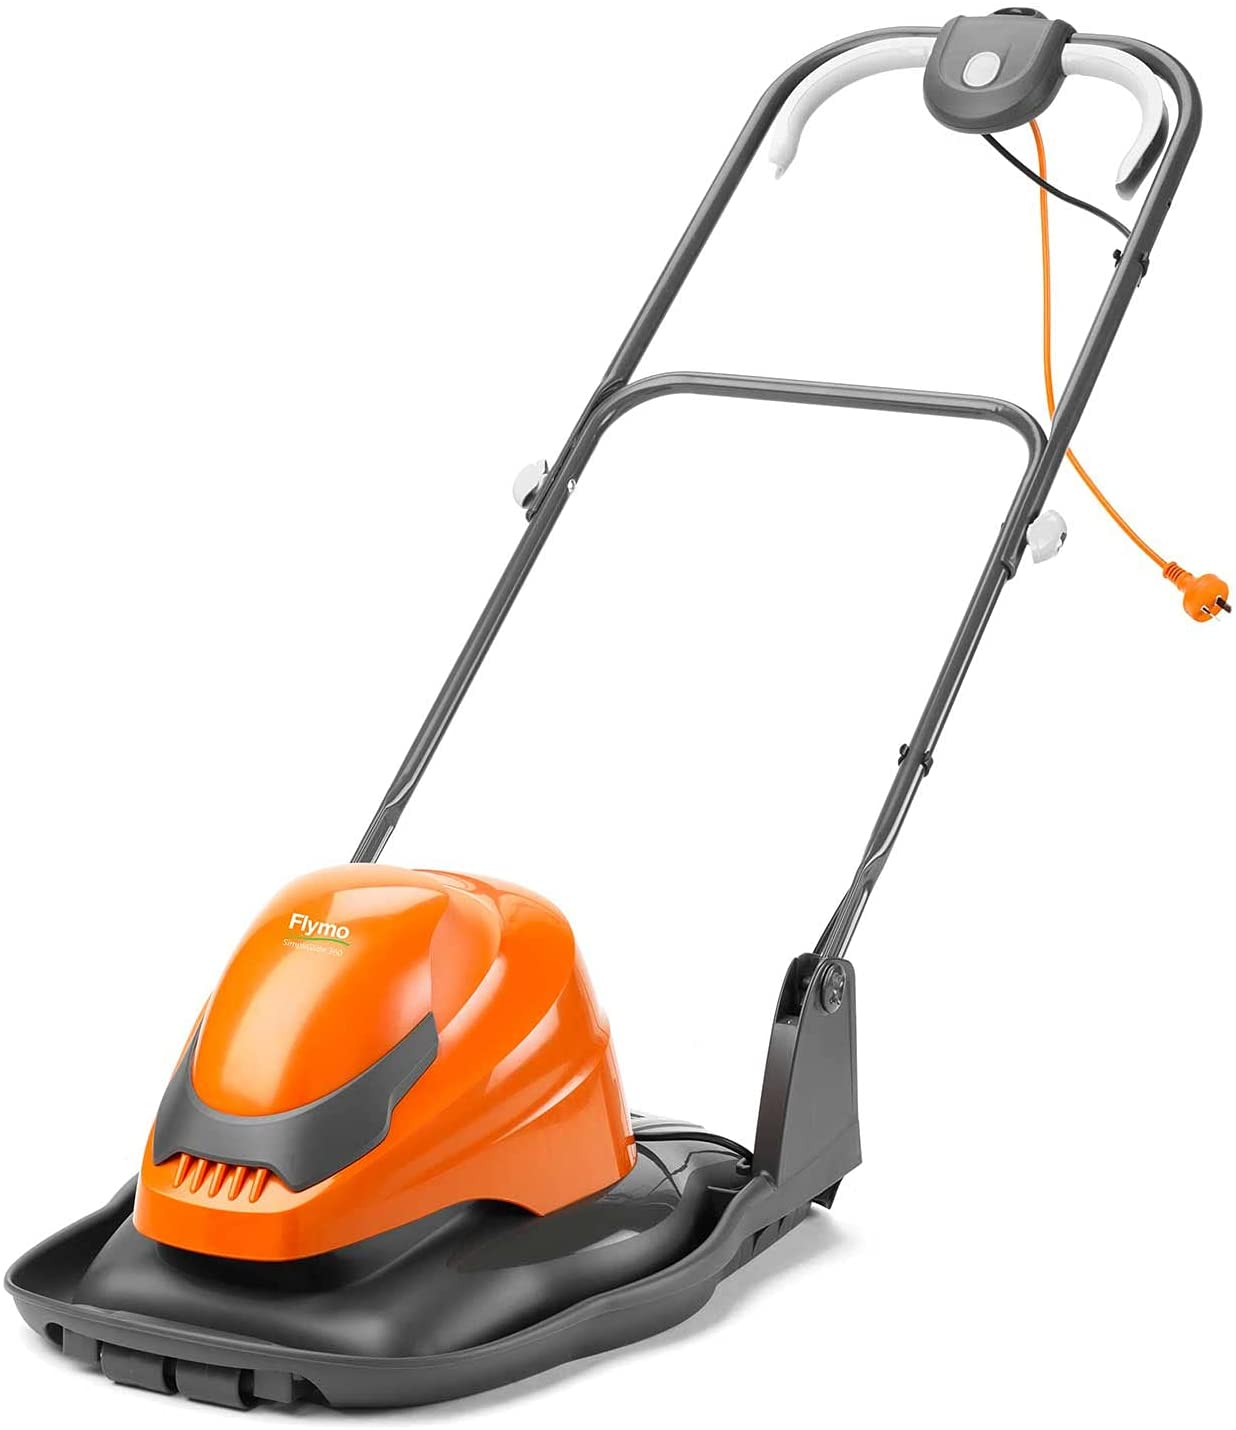 hovering electric lawn mower